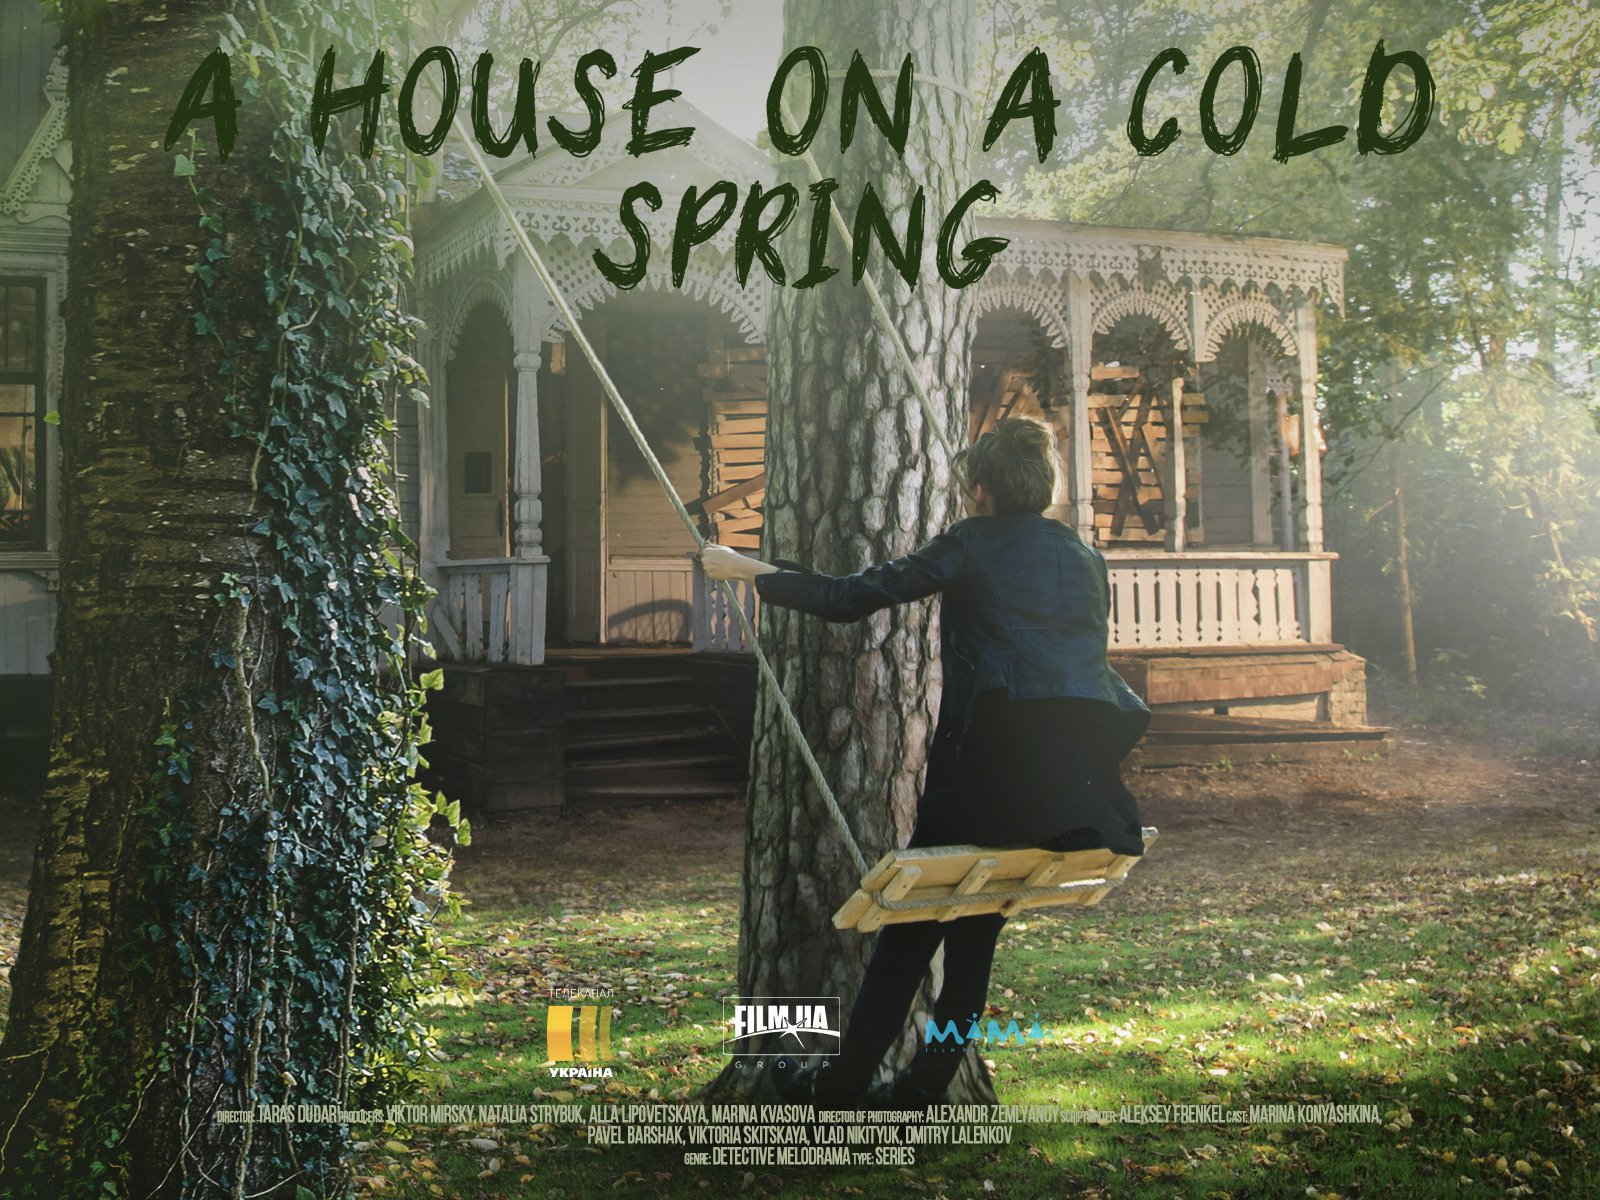 A House on a Cold Spring - Season 1